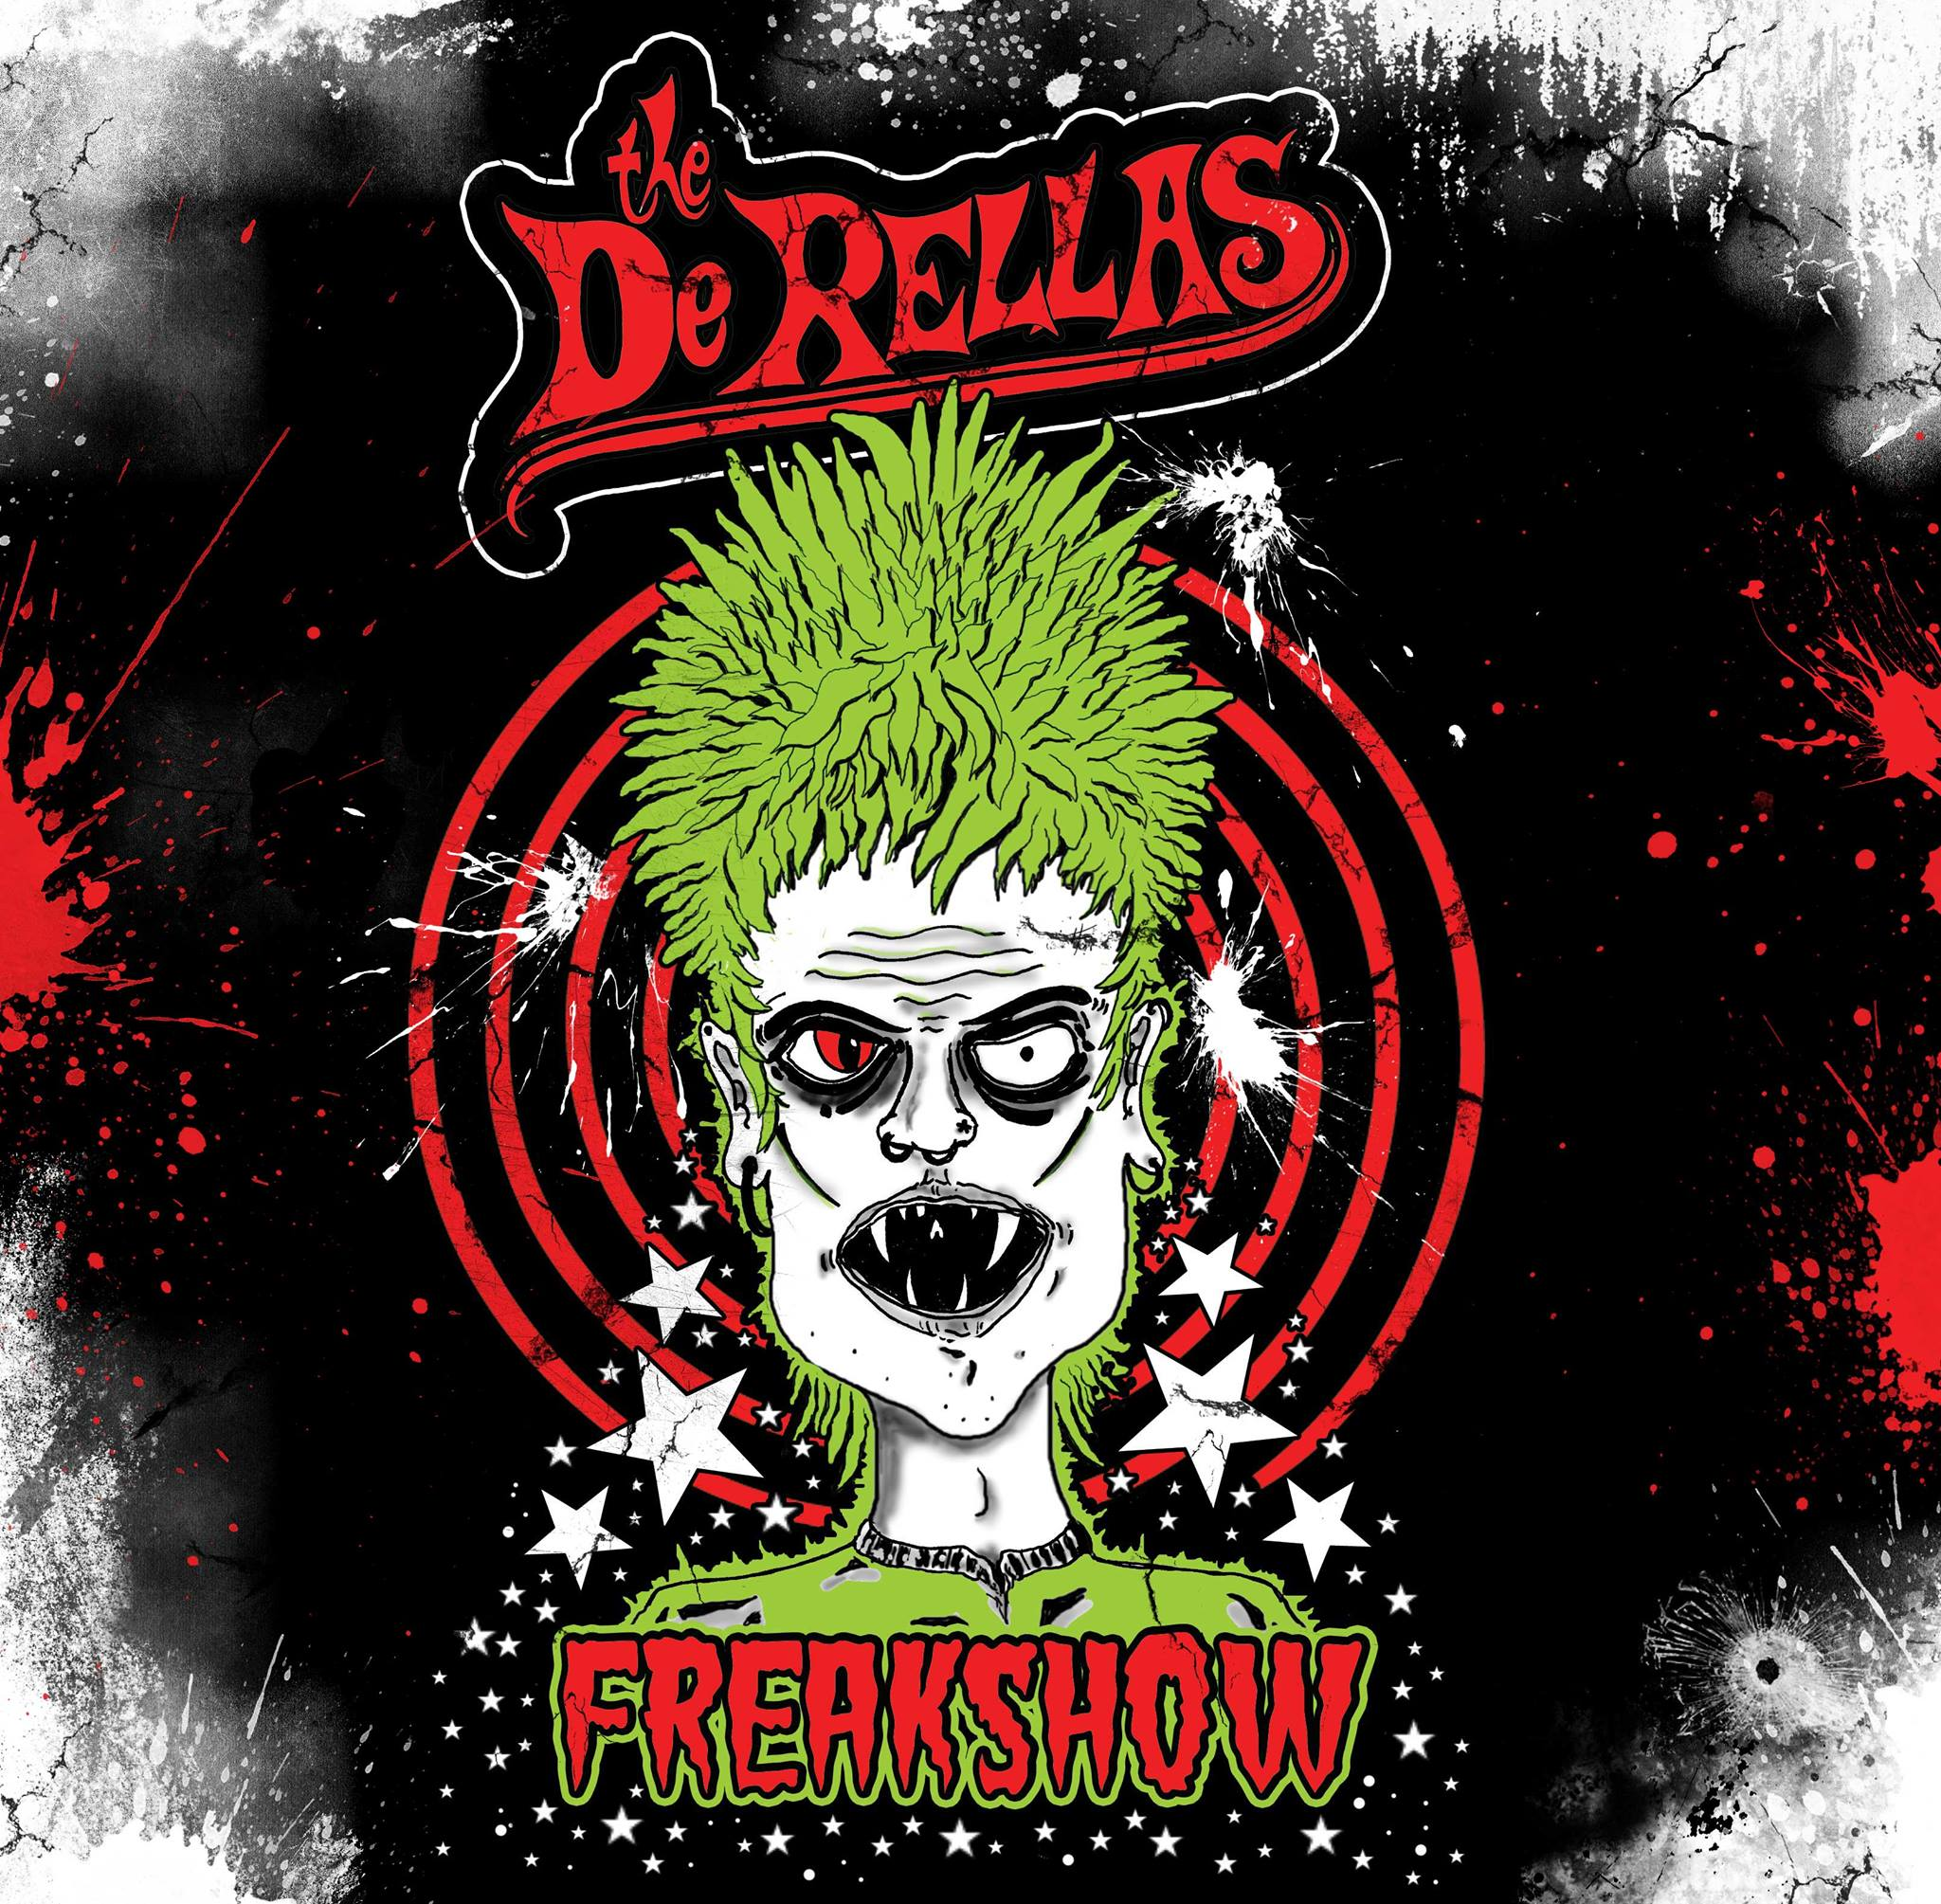 DeRellas - Freakshow artwork